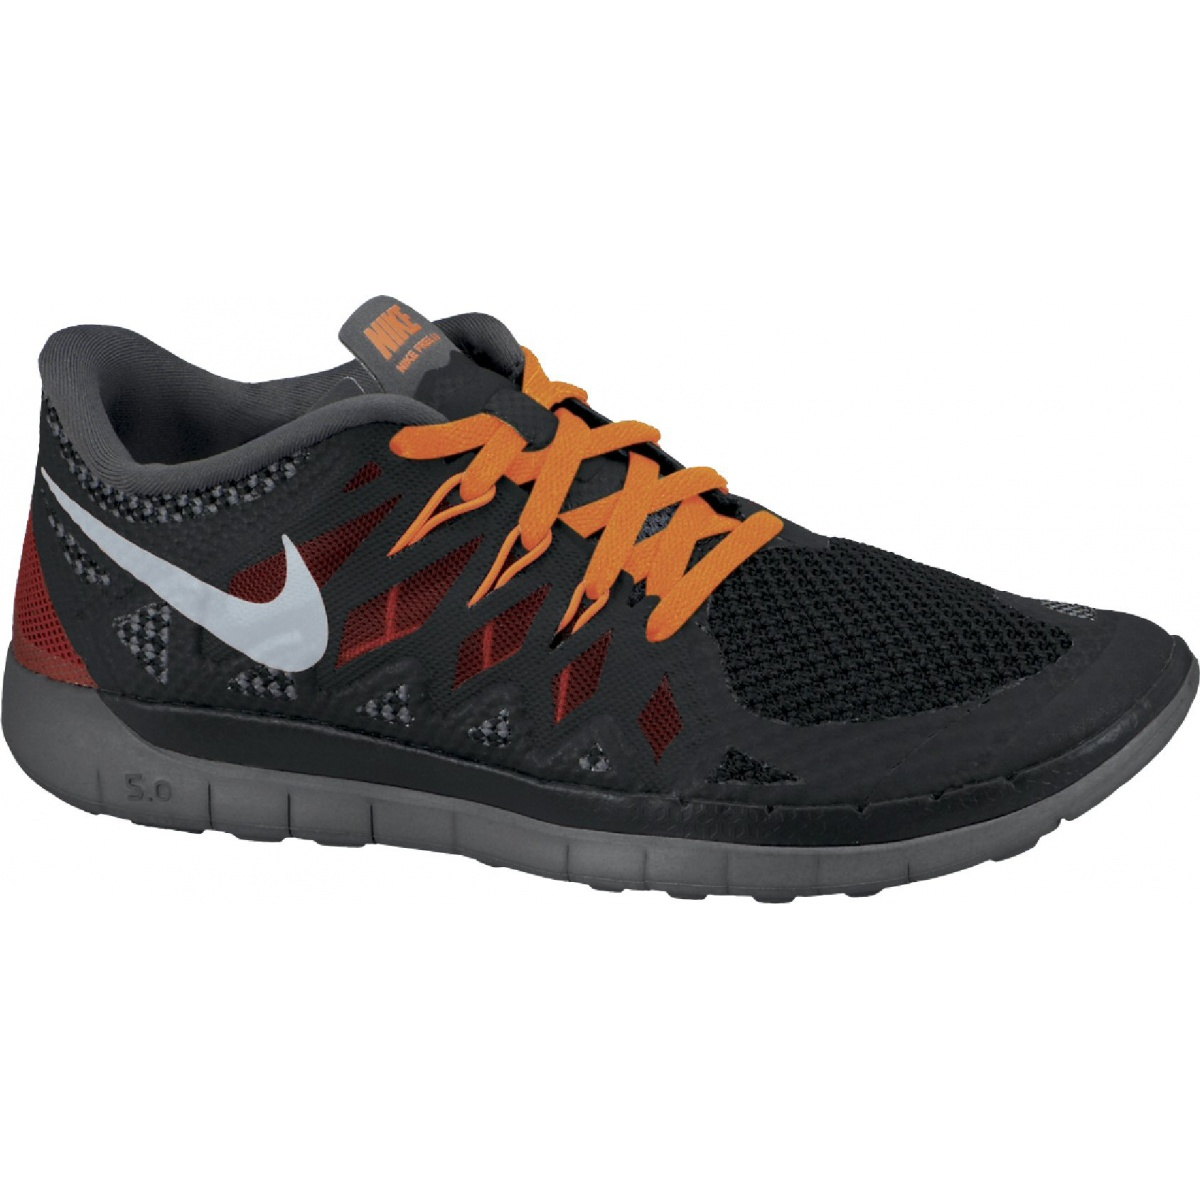 nike free 5 0 2014 schwarz orange laufschuhe kinder online. Black Bedroom Furniture Sets. Home Design Ideas